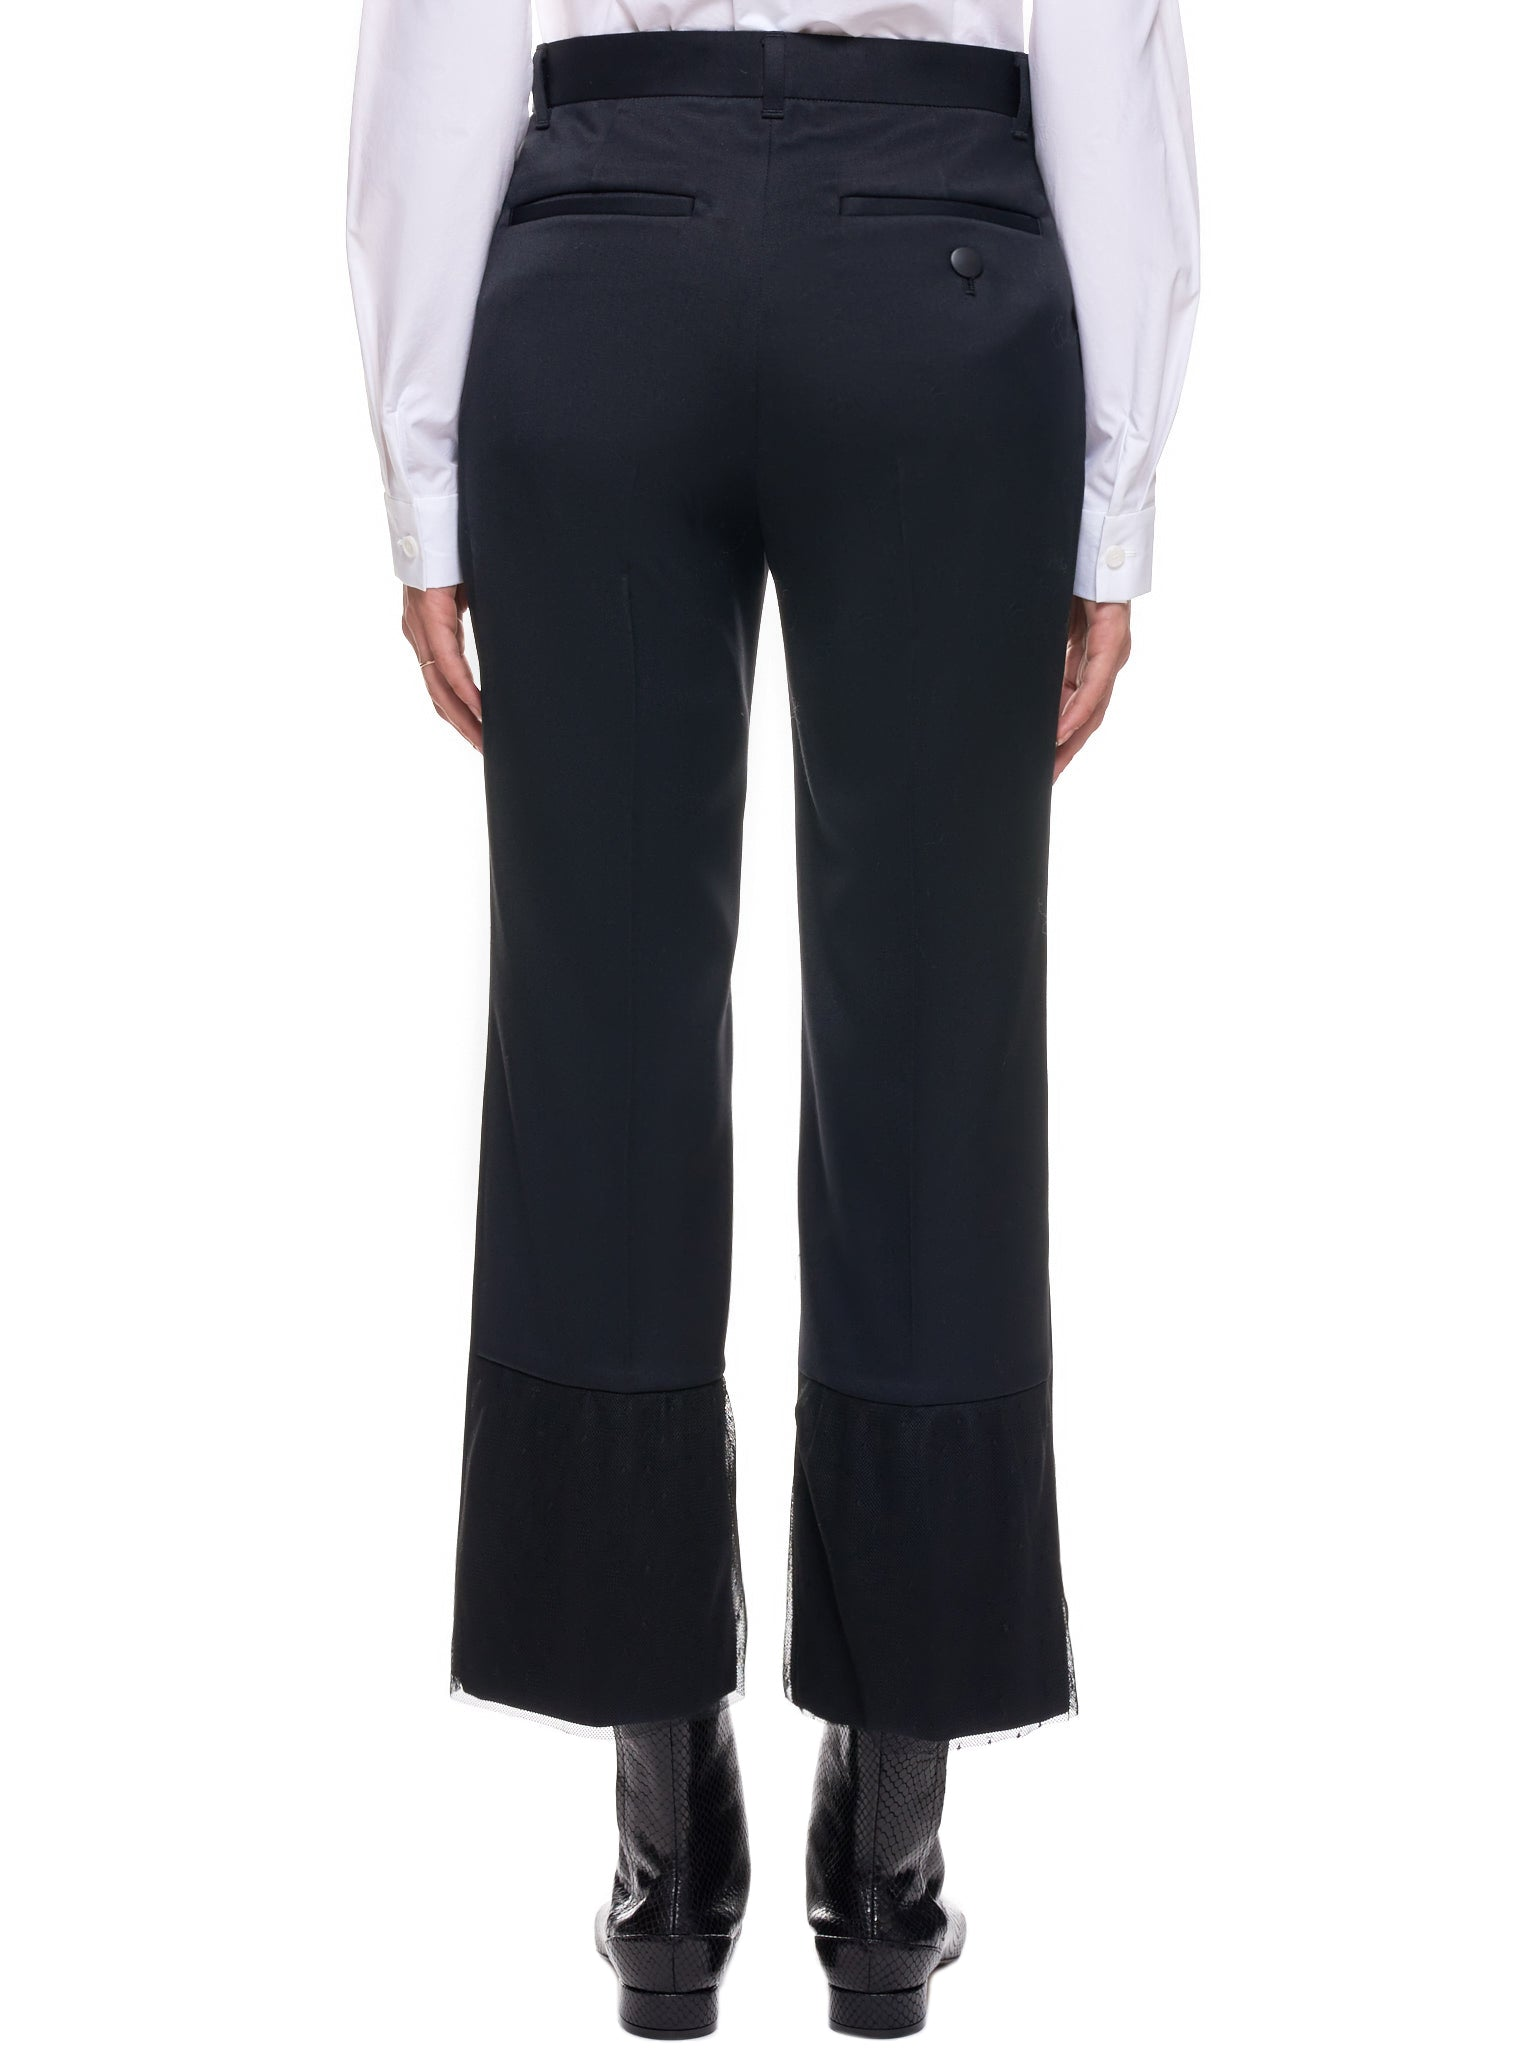 Undercover Pants | H.Lorenzo Back